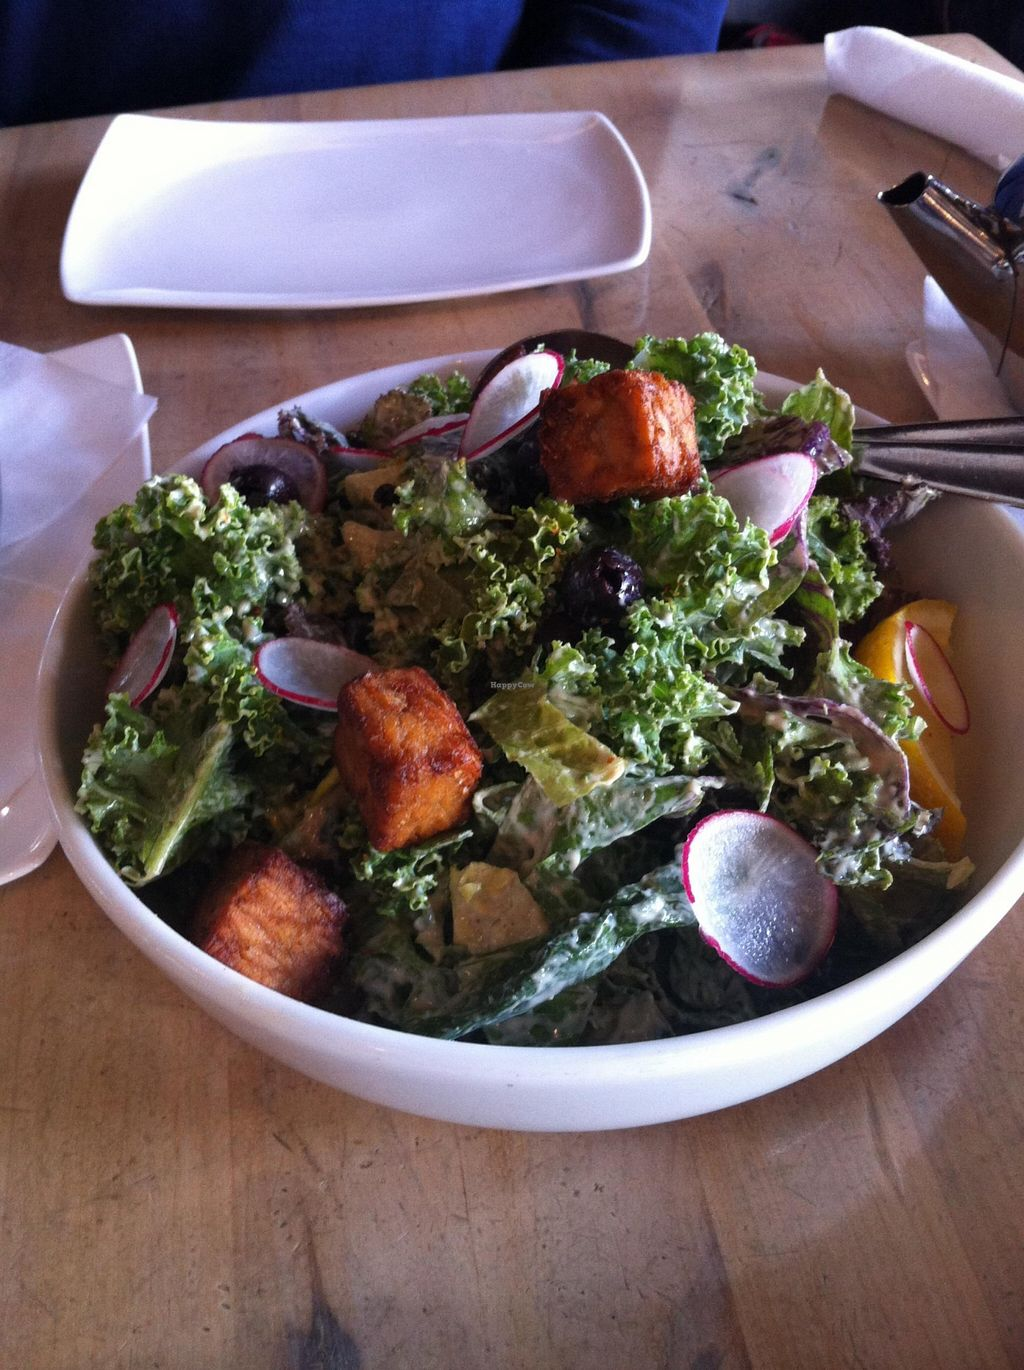 """Photo of The Acorn  by <a href=""""/members/profile/vegan%20frog"""">vegan frog</a> <br/>Vegan kale salad <br/> October 24, 2015  - <a href='/contact/abuse/image/32348/122537'>Report</a>"""